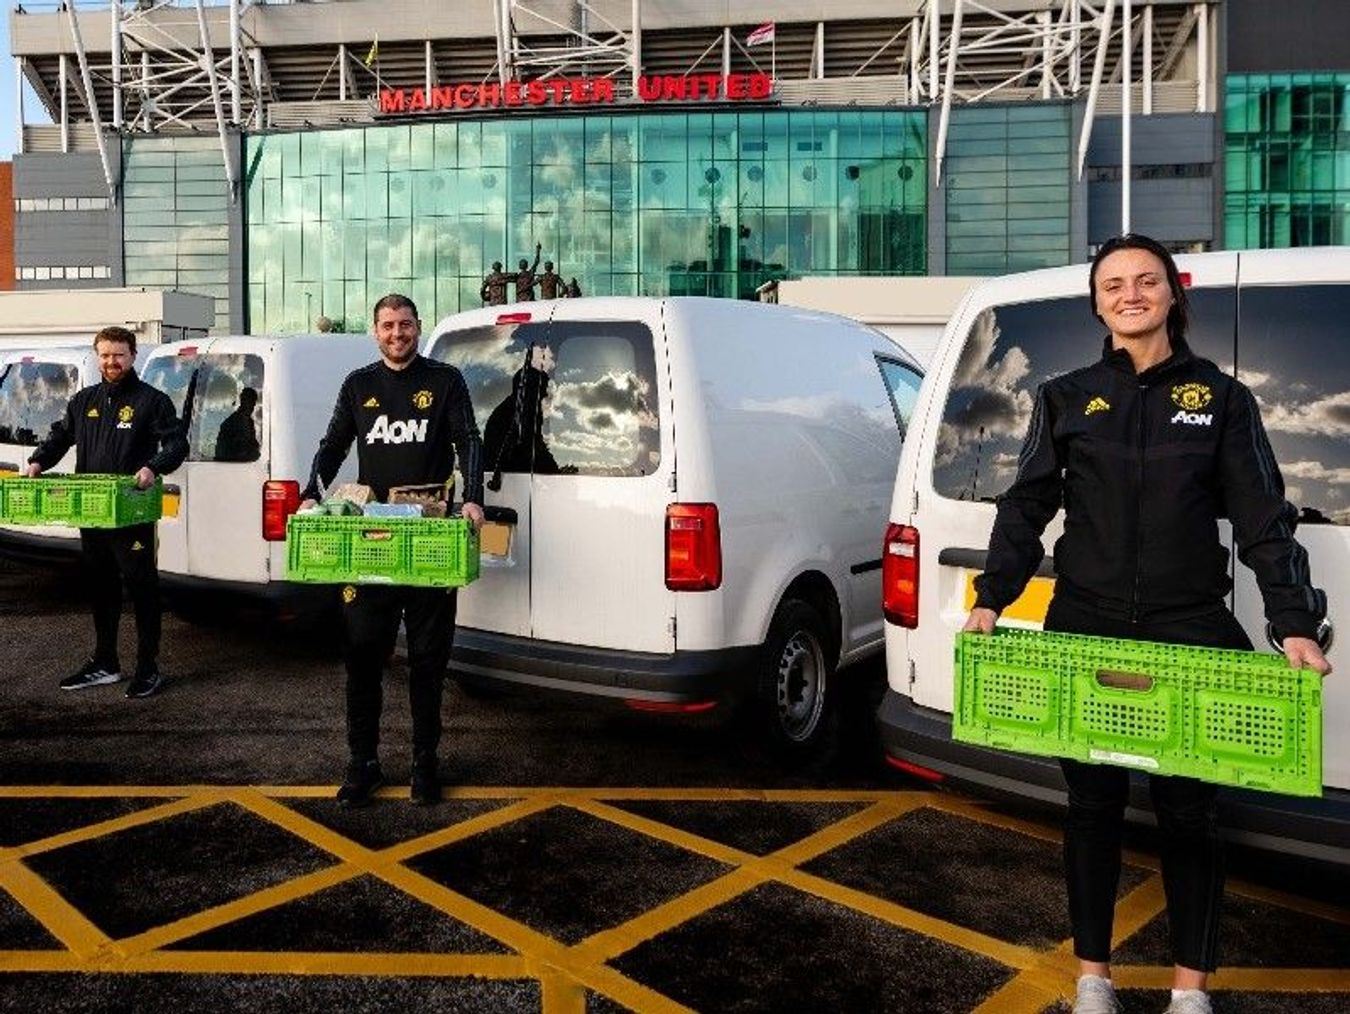 MU Foundation deliver food